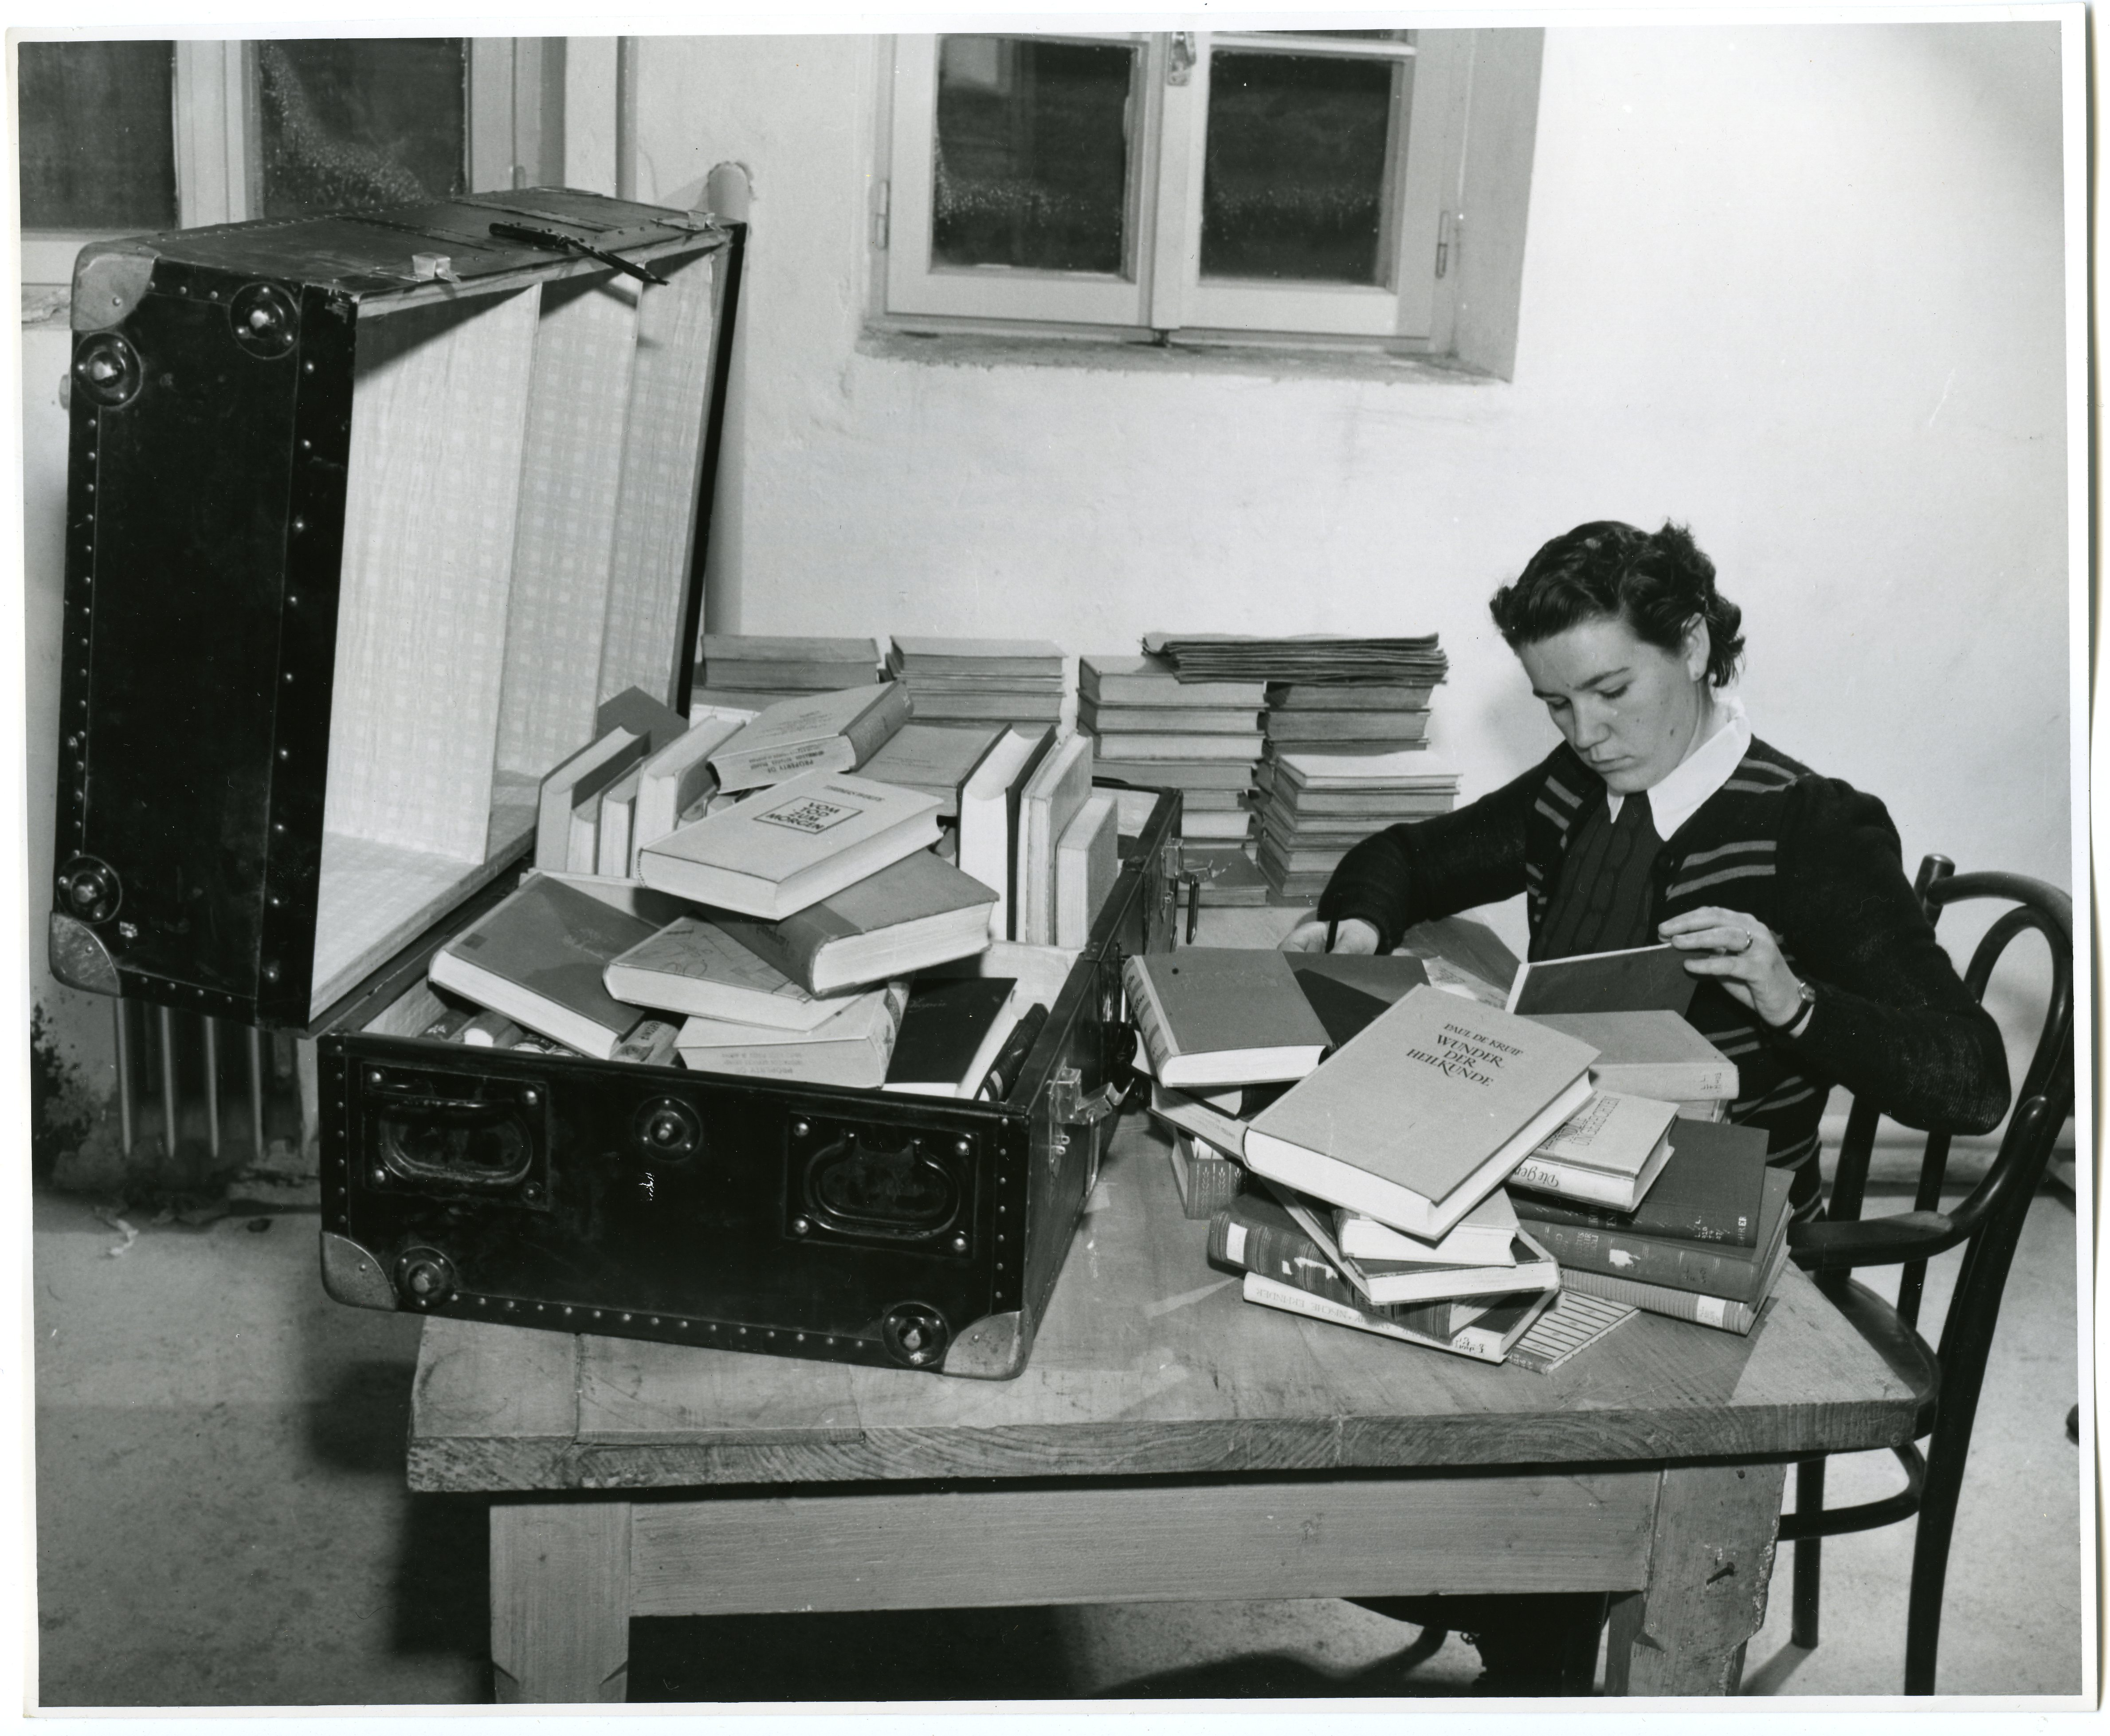 Original Caption: The Librarian Carefully Enters the Consignment Into Her Books, 12/1952. Records of the U.S. Information Agency. National Archives Identifier 23932351